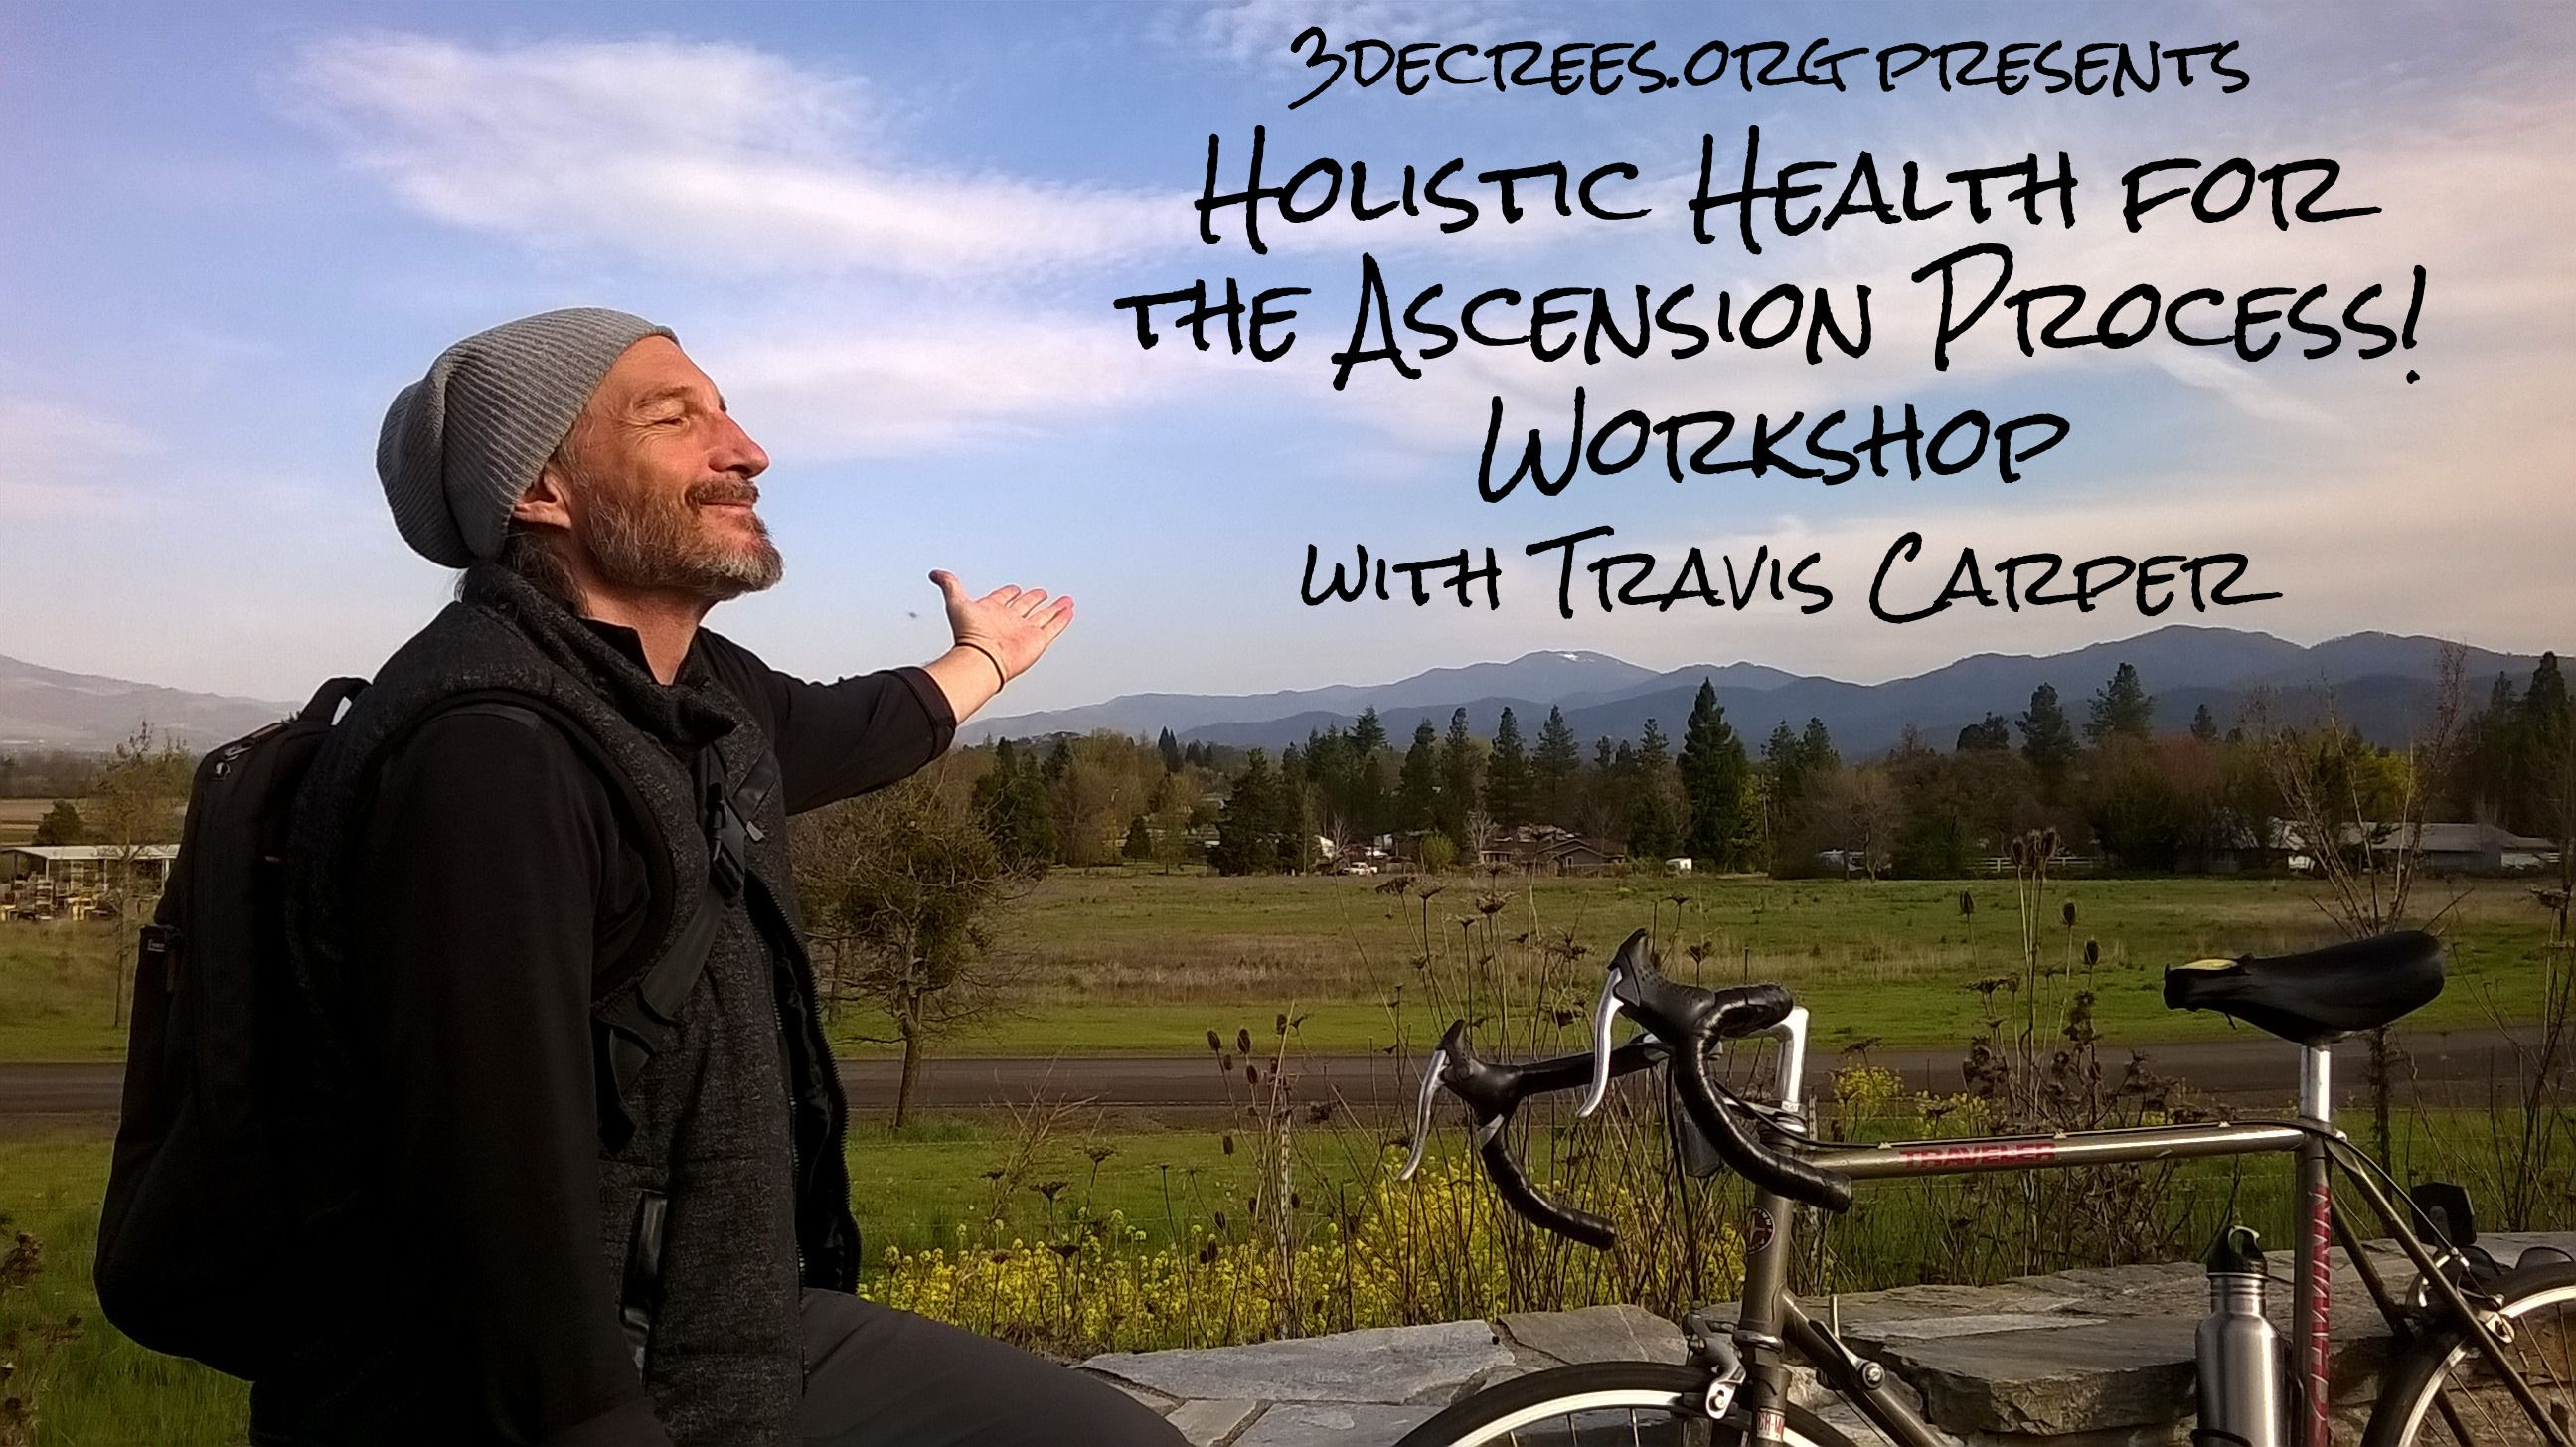 Holistic Health for the Ascension Process! WORKSHOPS